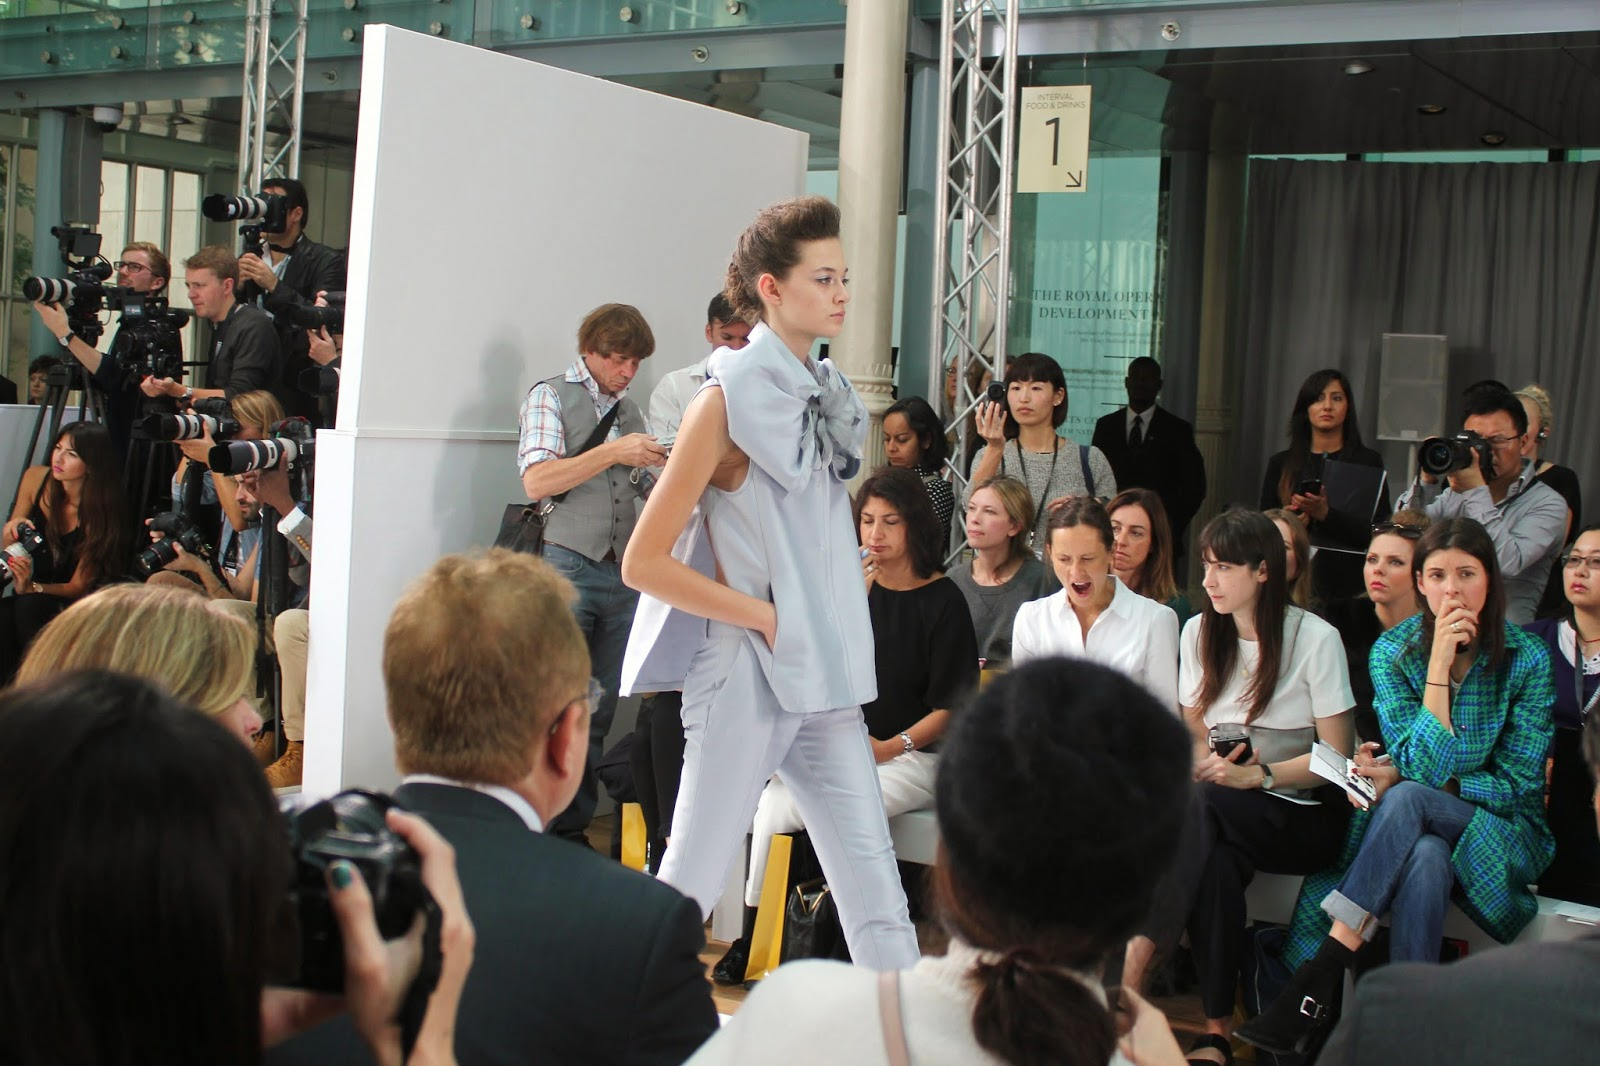 london-fashion-week-2014-lfw-DAKS-show-catwalk-spring-summer-2015-models-clothes-fashion-frow-royal-opera-house-top-trousers